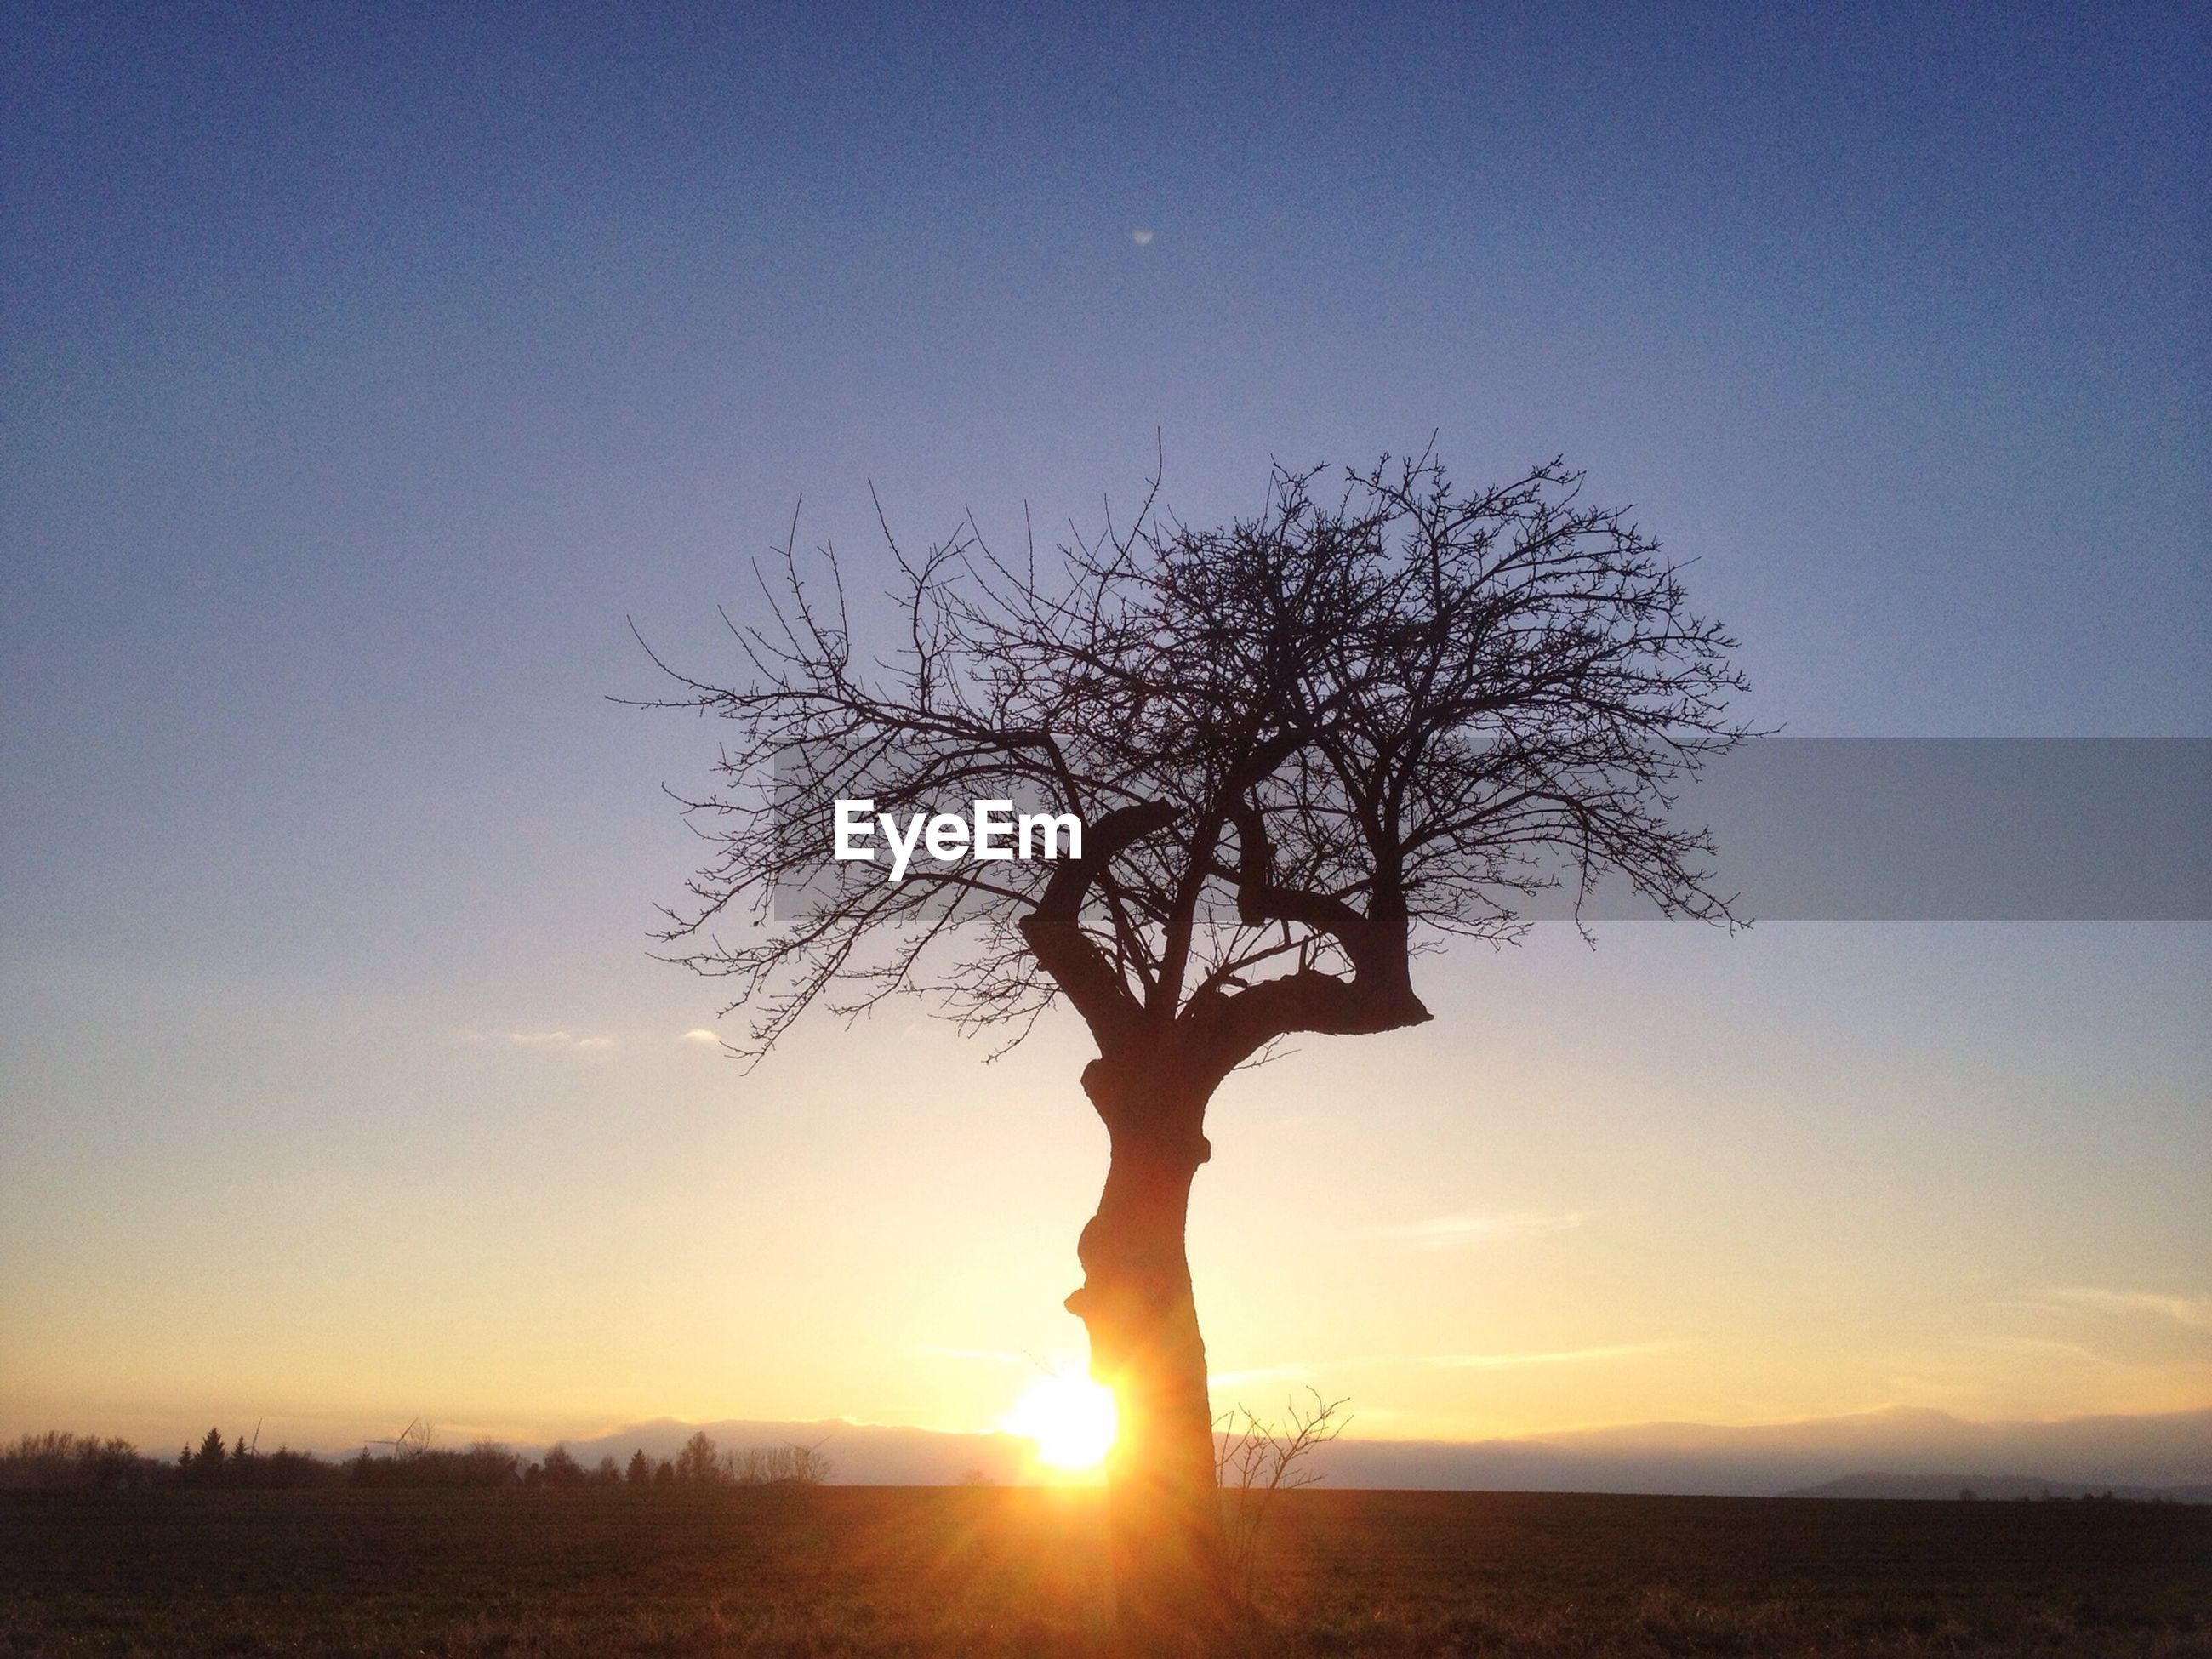 Bare tree on field against sky during sunrise